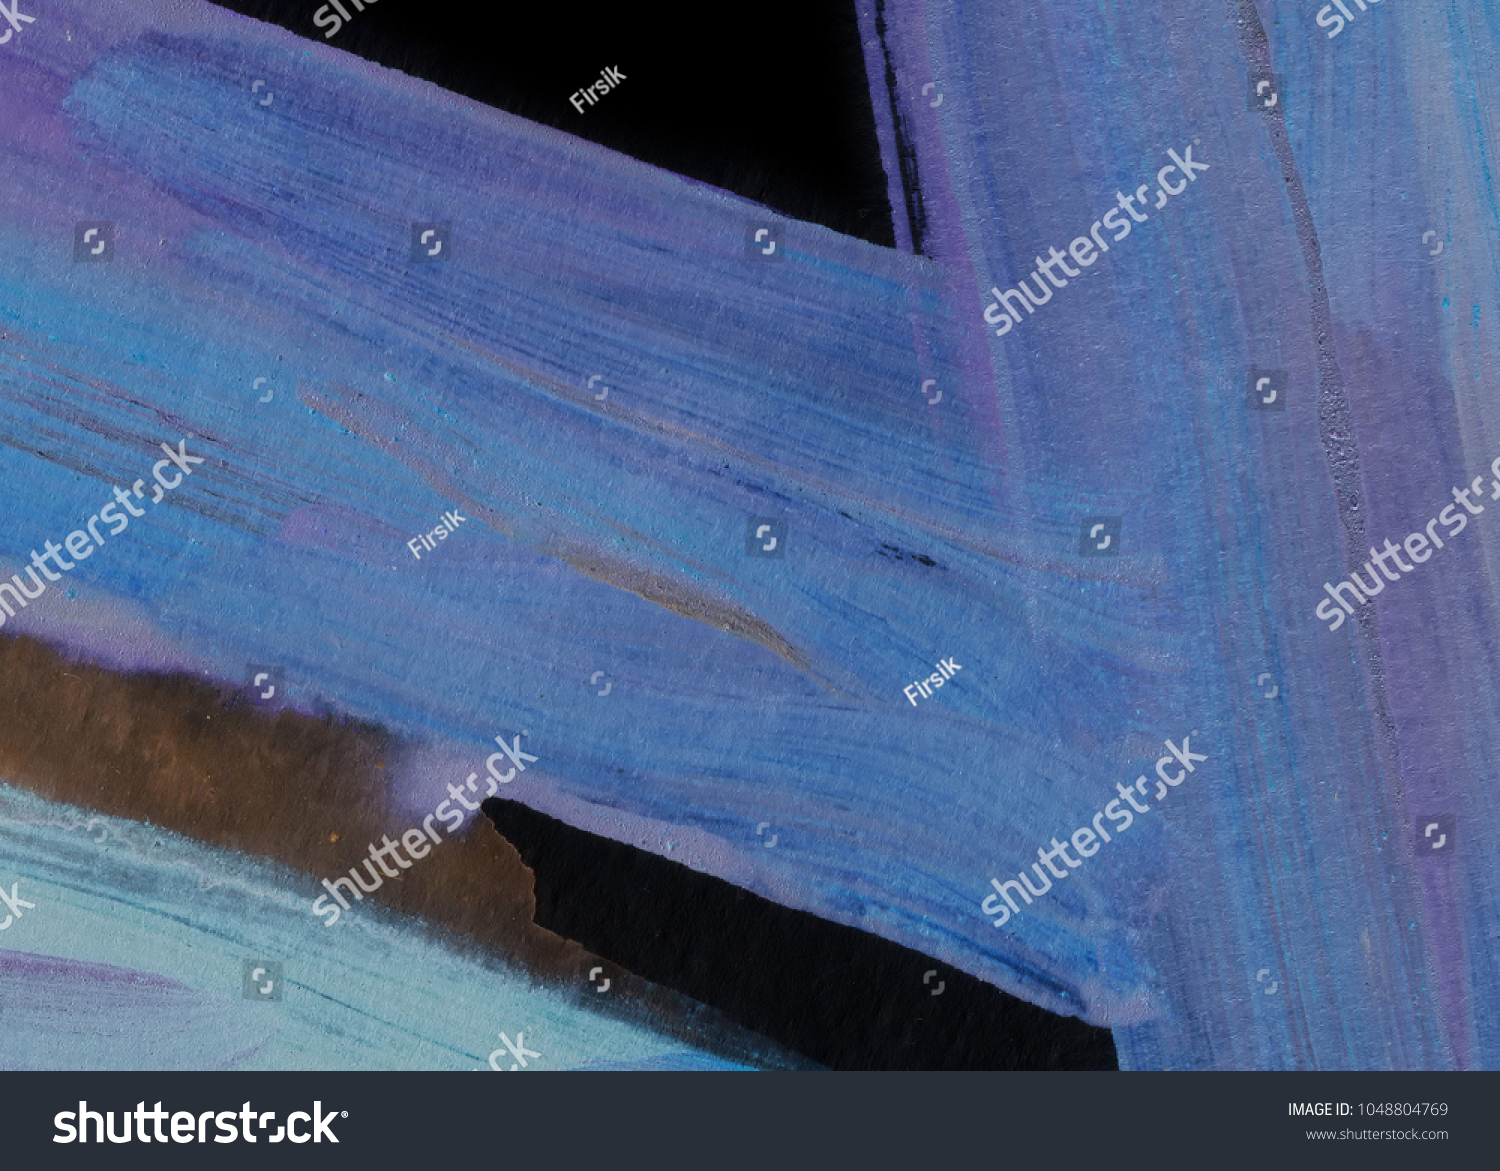 Wonderful Wallpaper Marble Paper - stock-photo-abstract-acrylic-creative-background-marble-style-paint-stroke-texture-on-paper-wallpaper-for-1048804769  Collection_818333.jpg